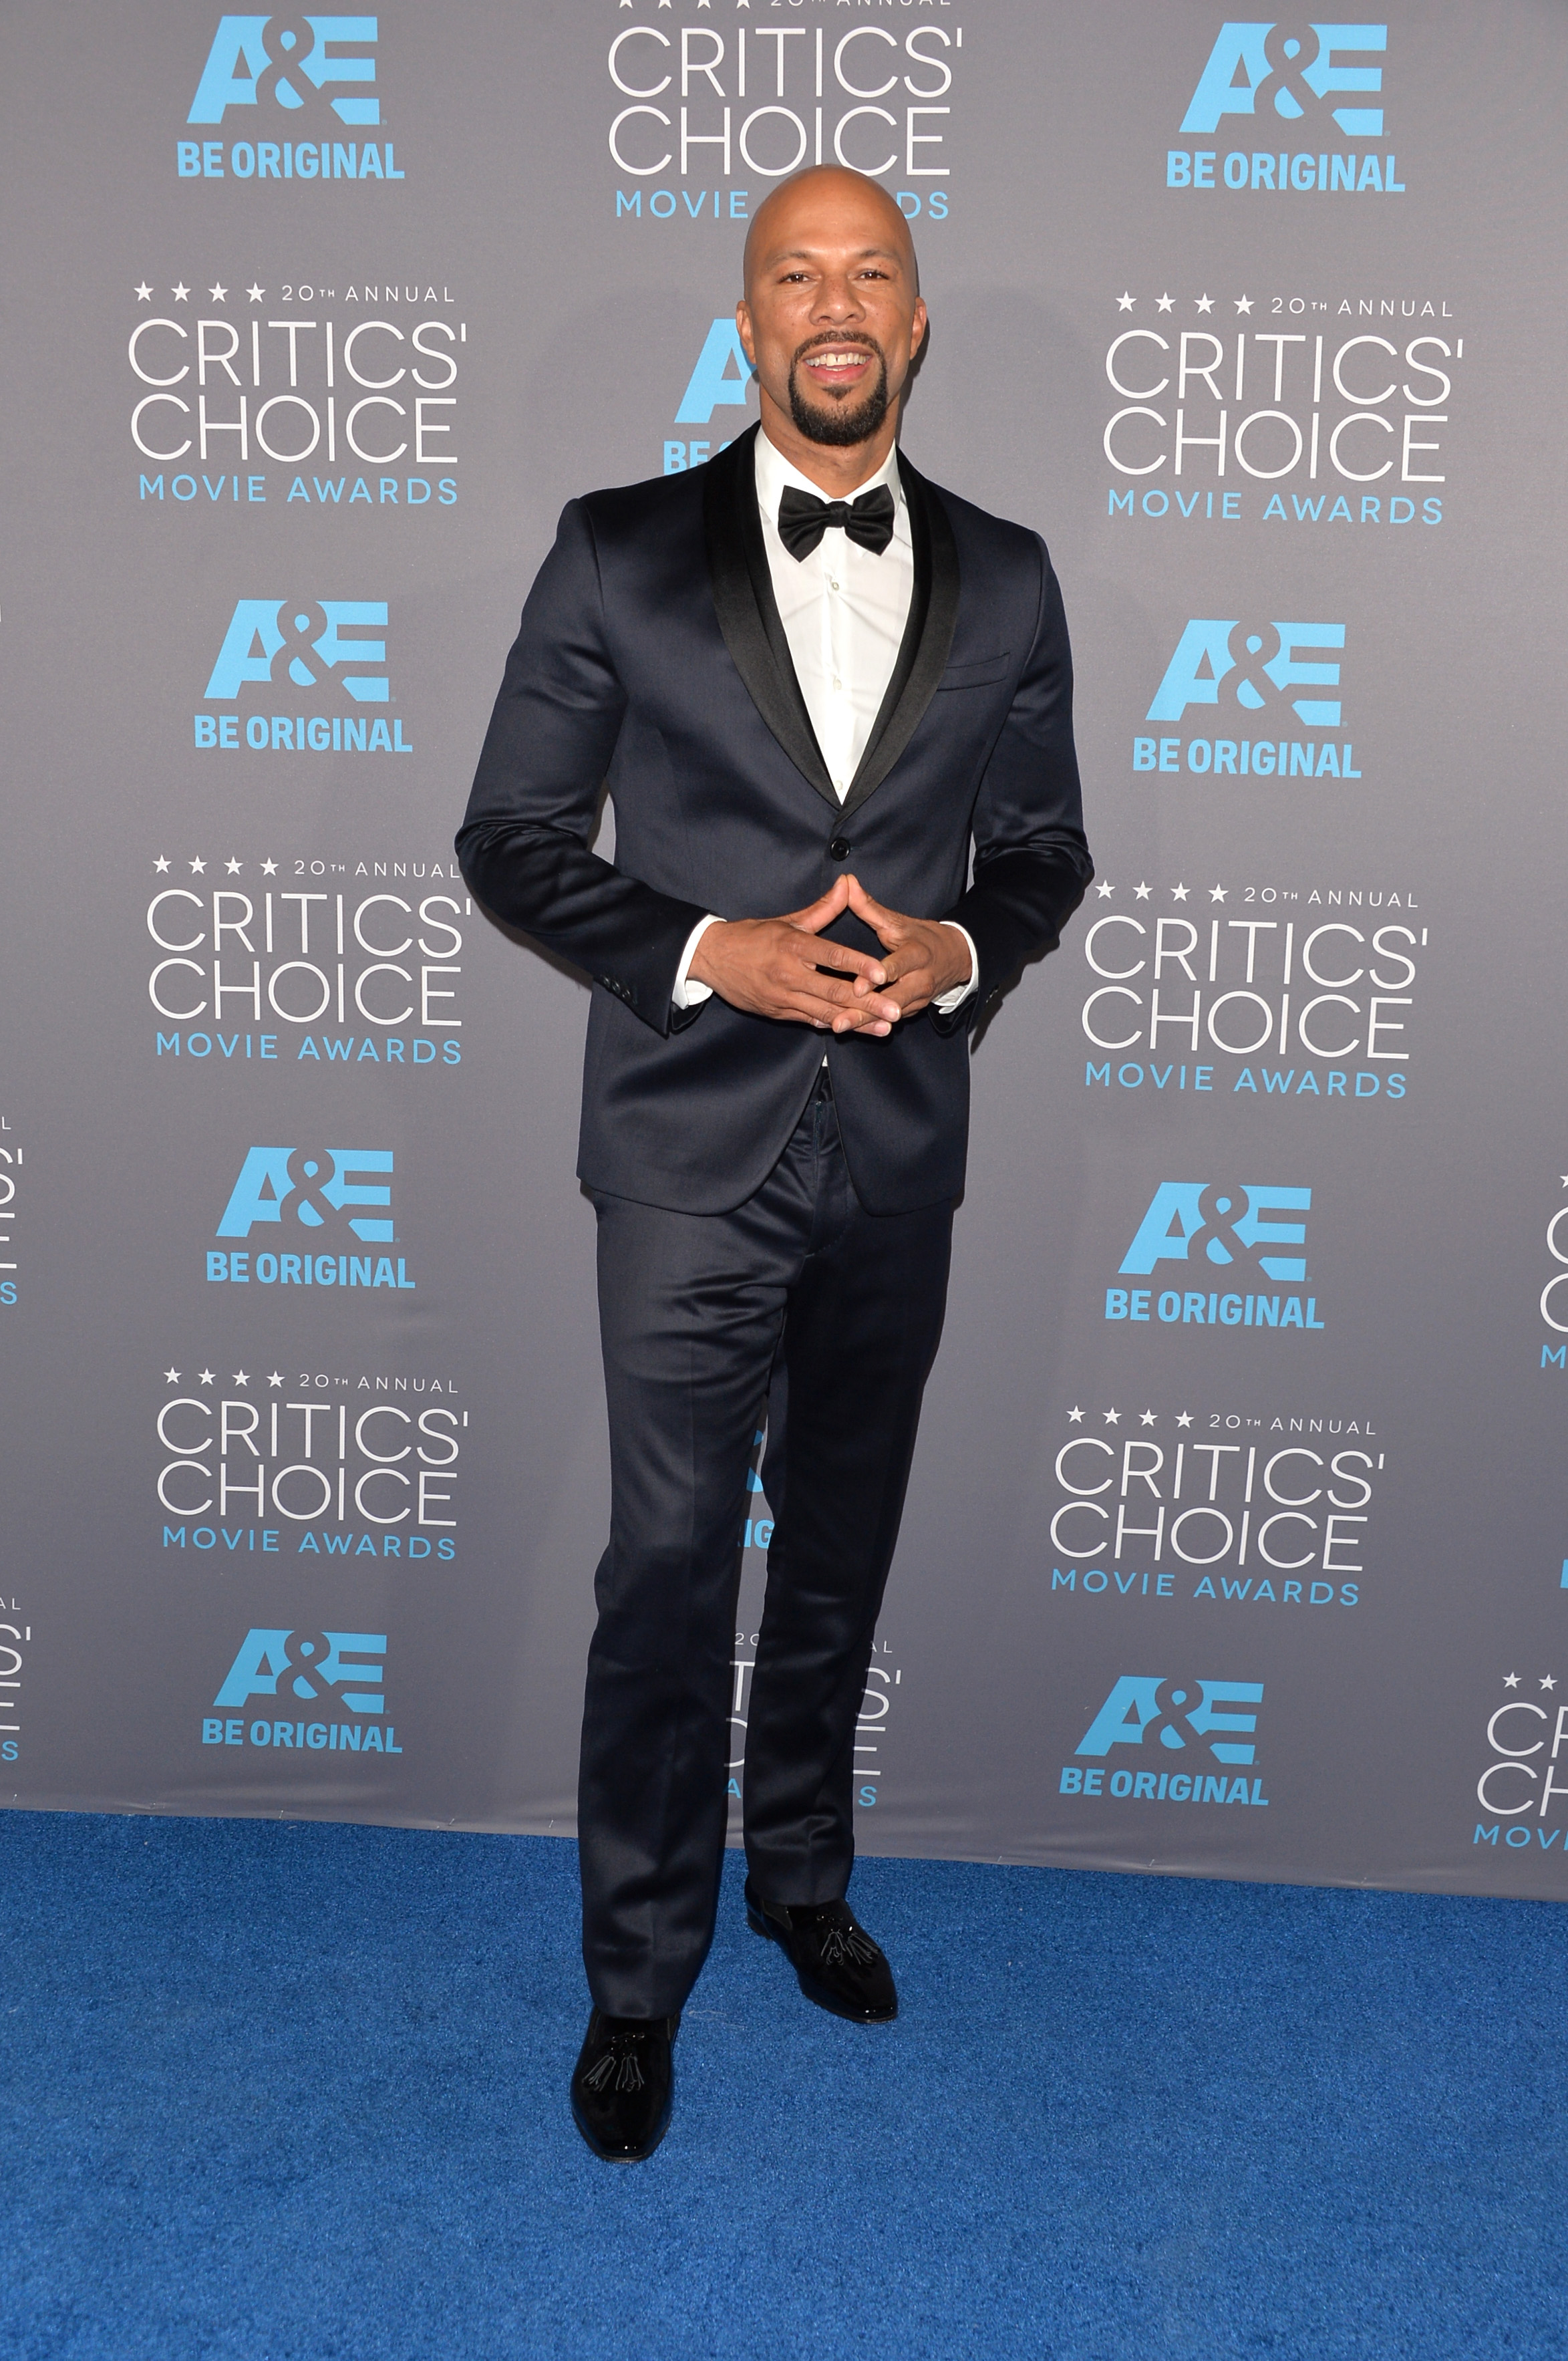 common-20th-annual-critics-choice-movie-awards